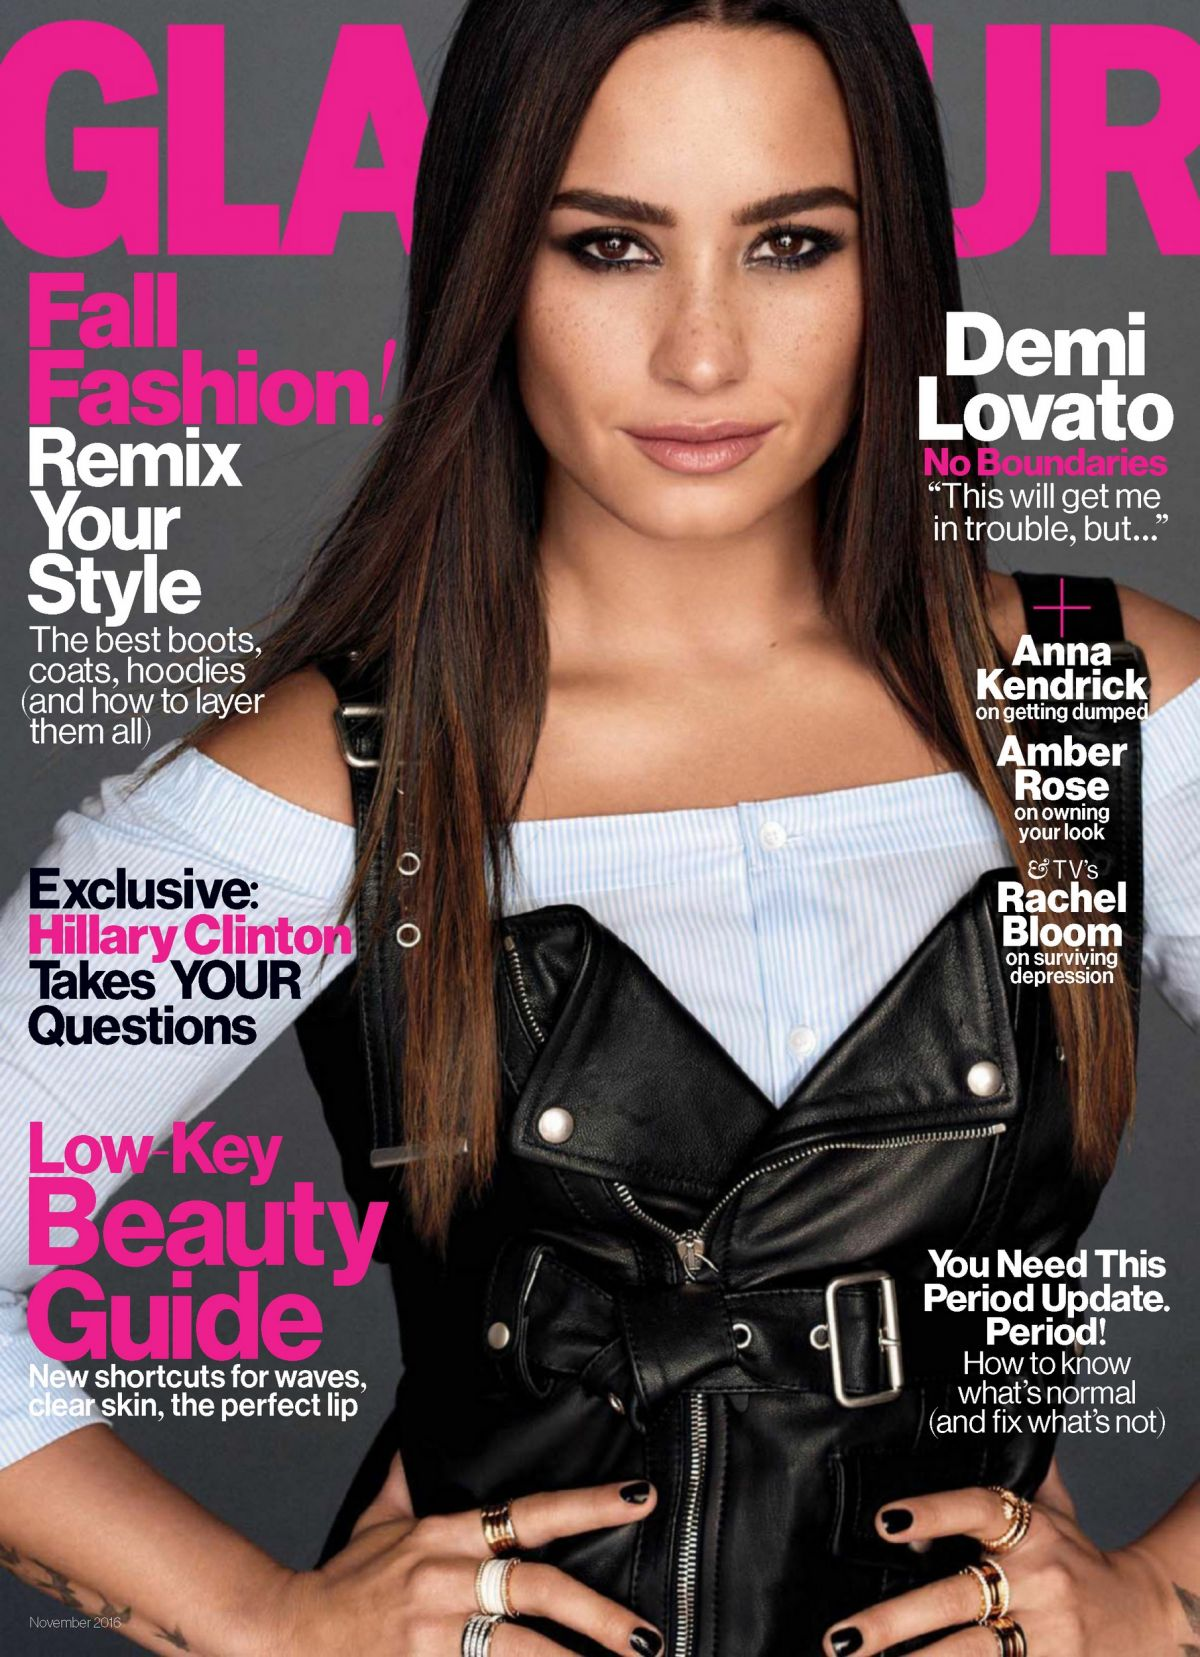 DEMI LOVATO in Glamour Magazine, November 2016 Issue